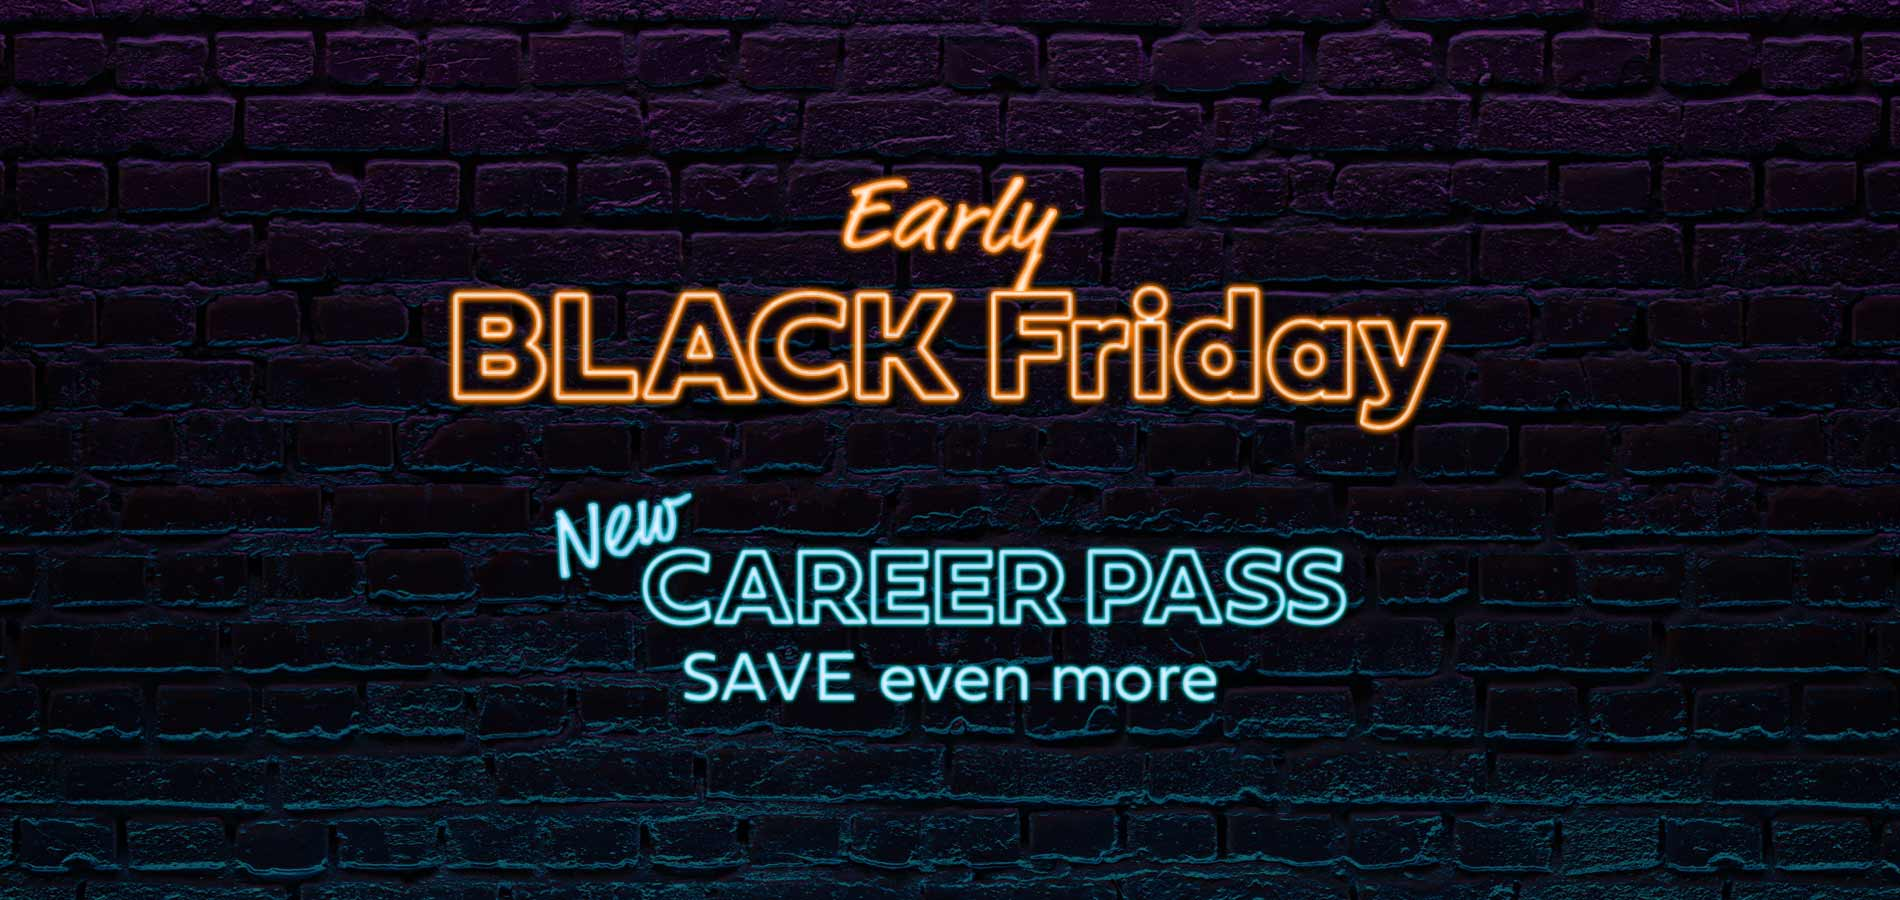 Save up to 50% with our Black Friday Promotion